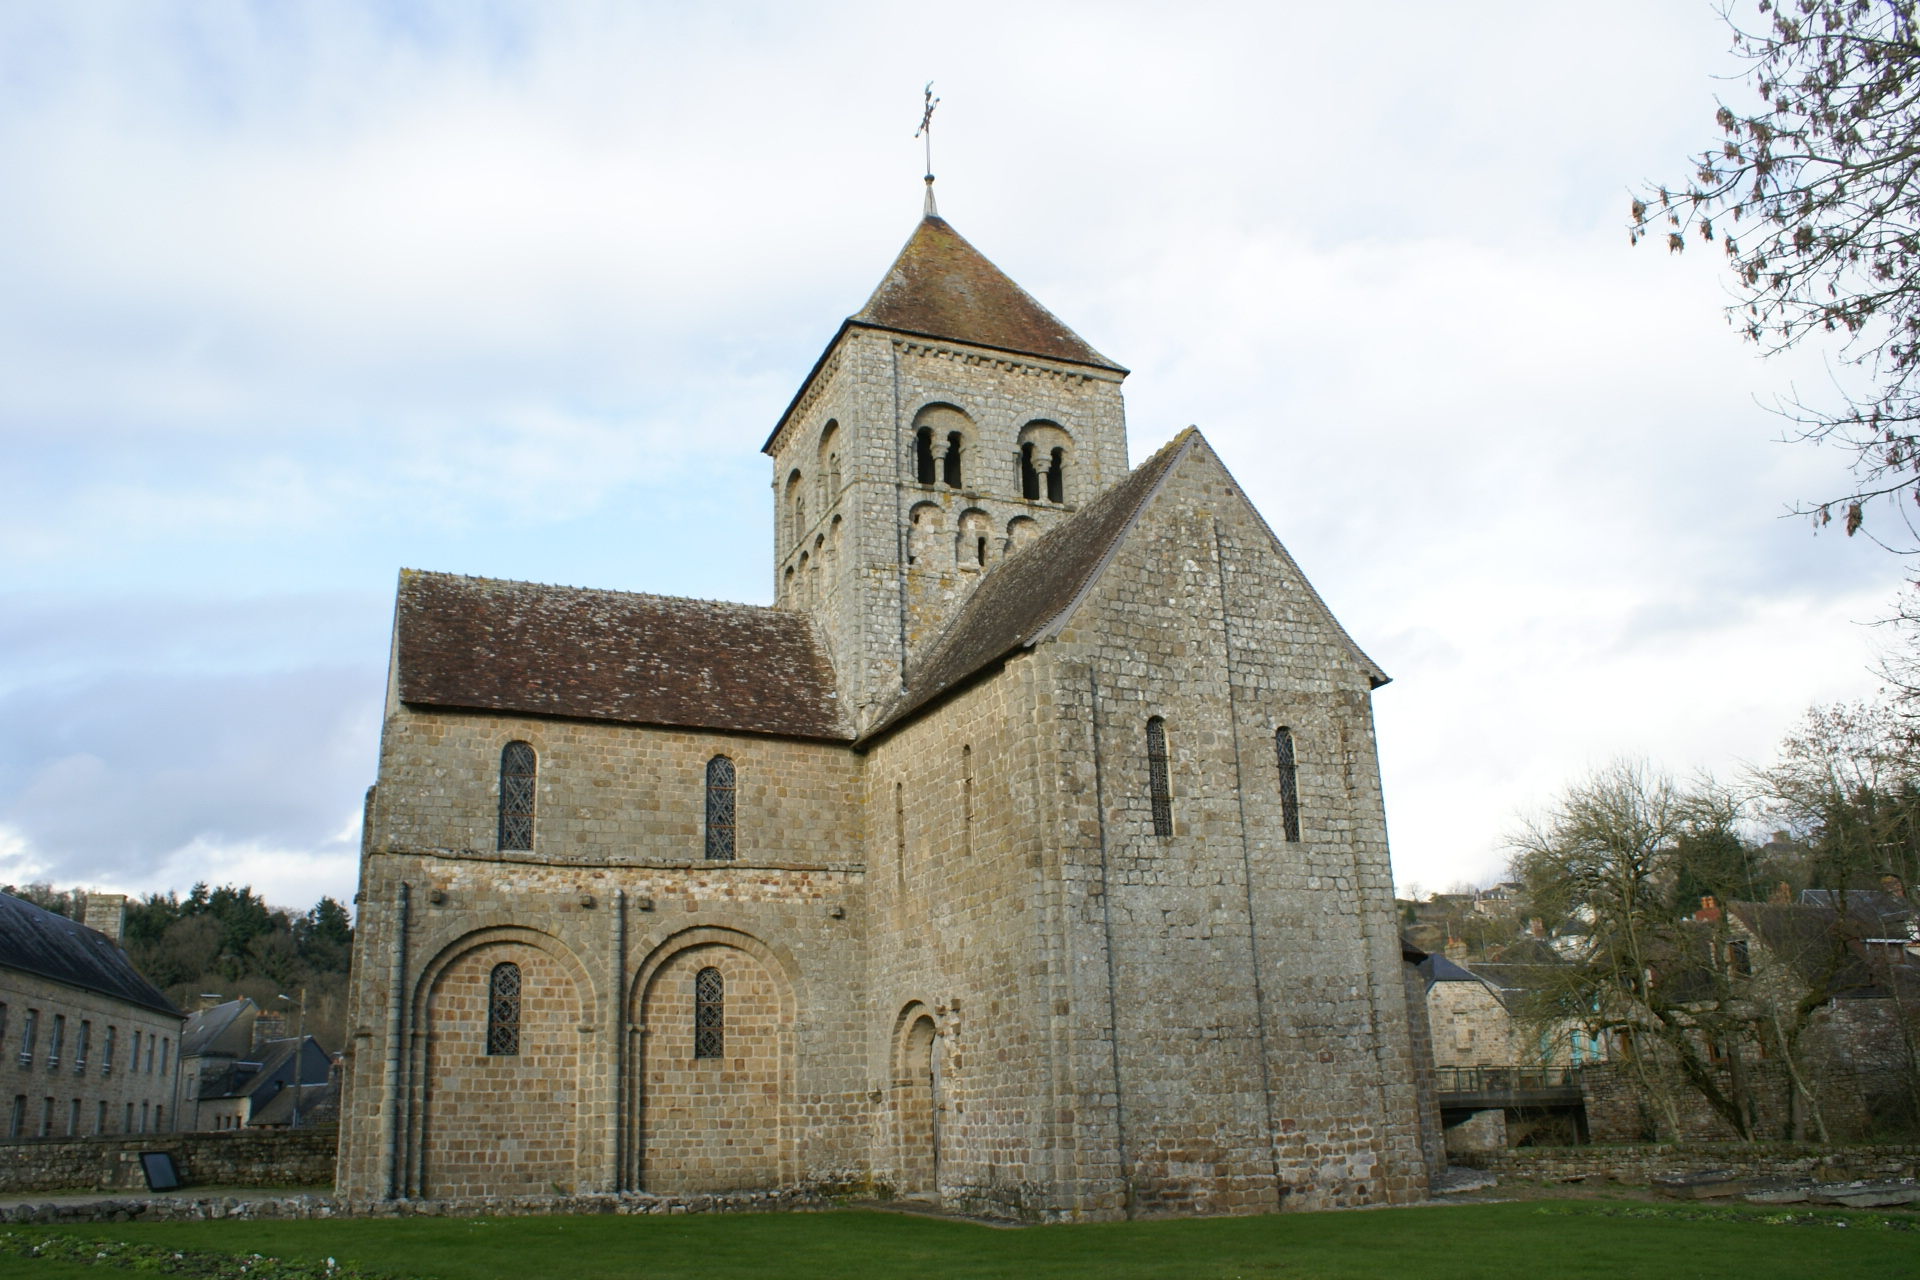 Chjurch of Notre-Dame, Domfront, Normandy